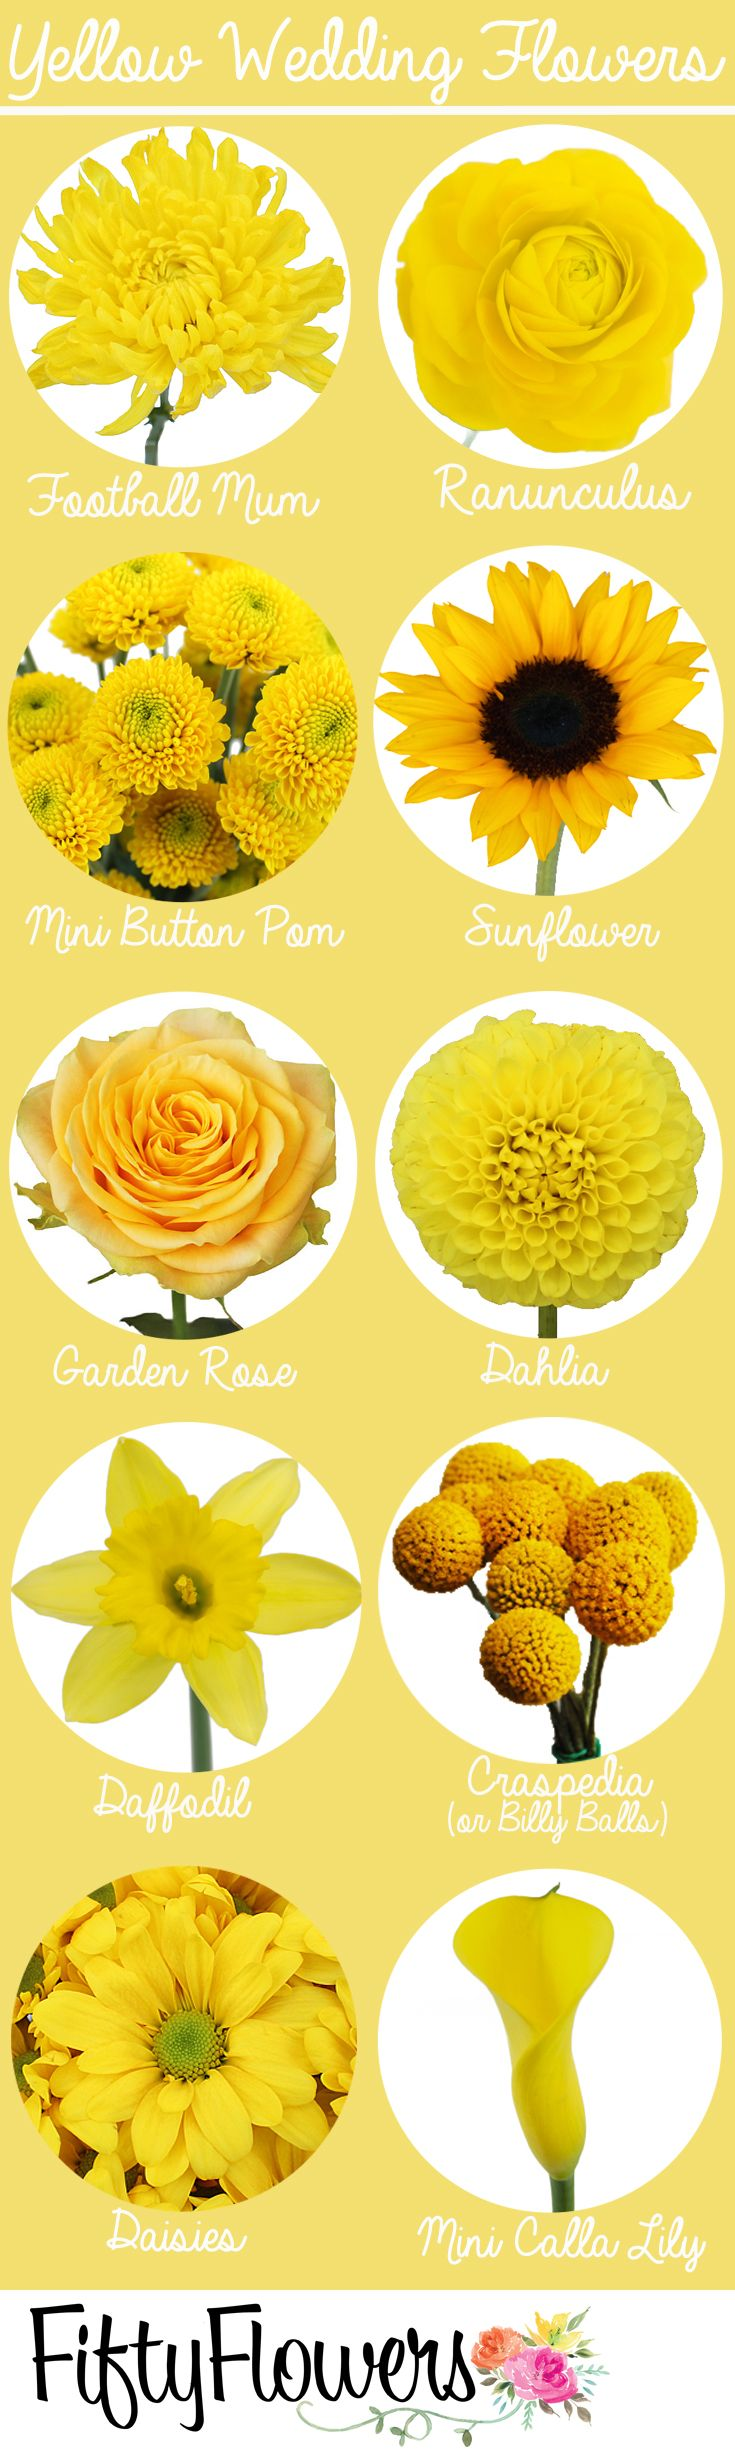 Find your sunny yellow wedding flowers at FiftyFlowers.com!